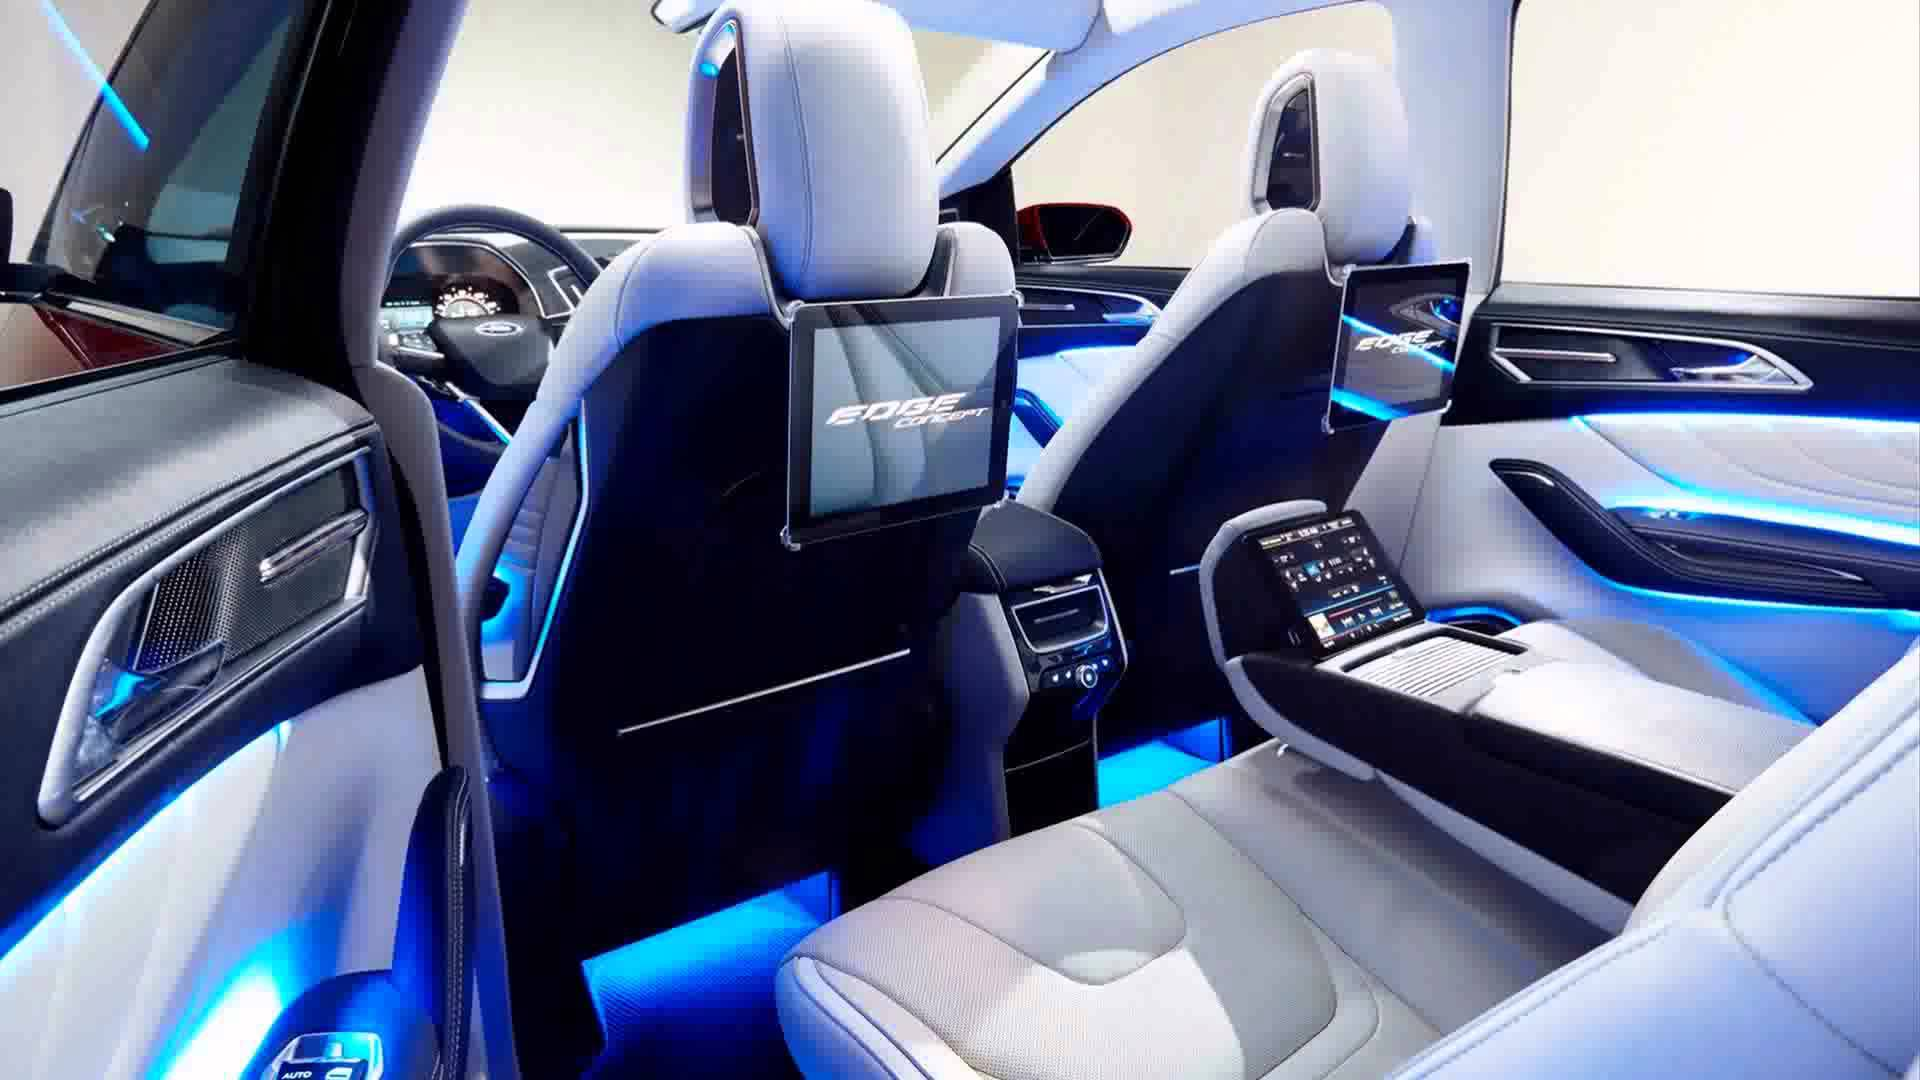 ford edge 2015 interior full of high tech features my car interior my car interior. Black Bedroom Furniture Sets. Home Design Ideas